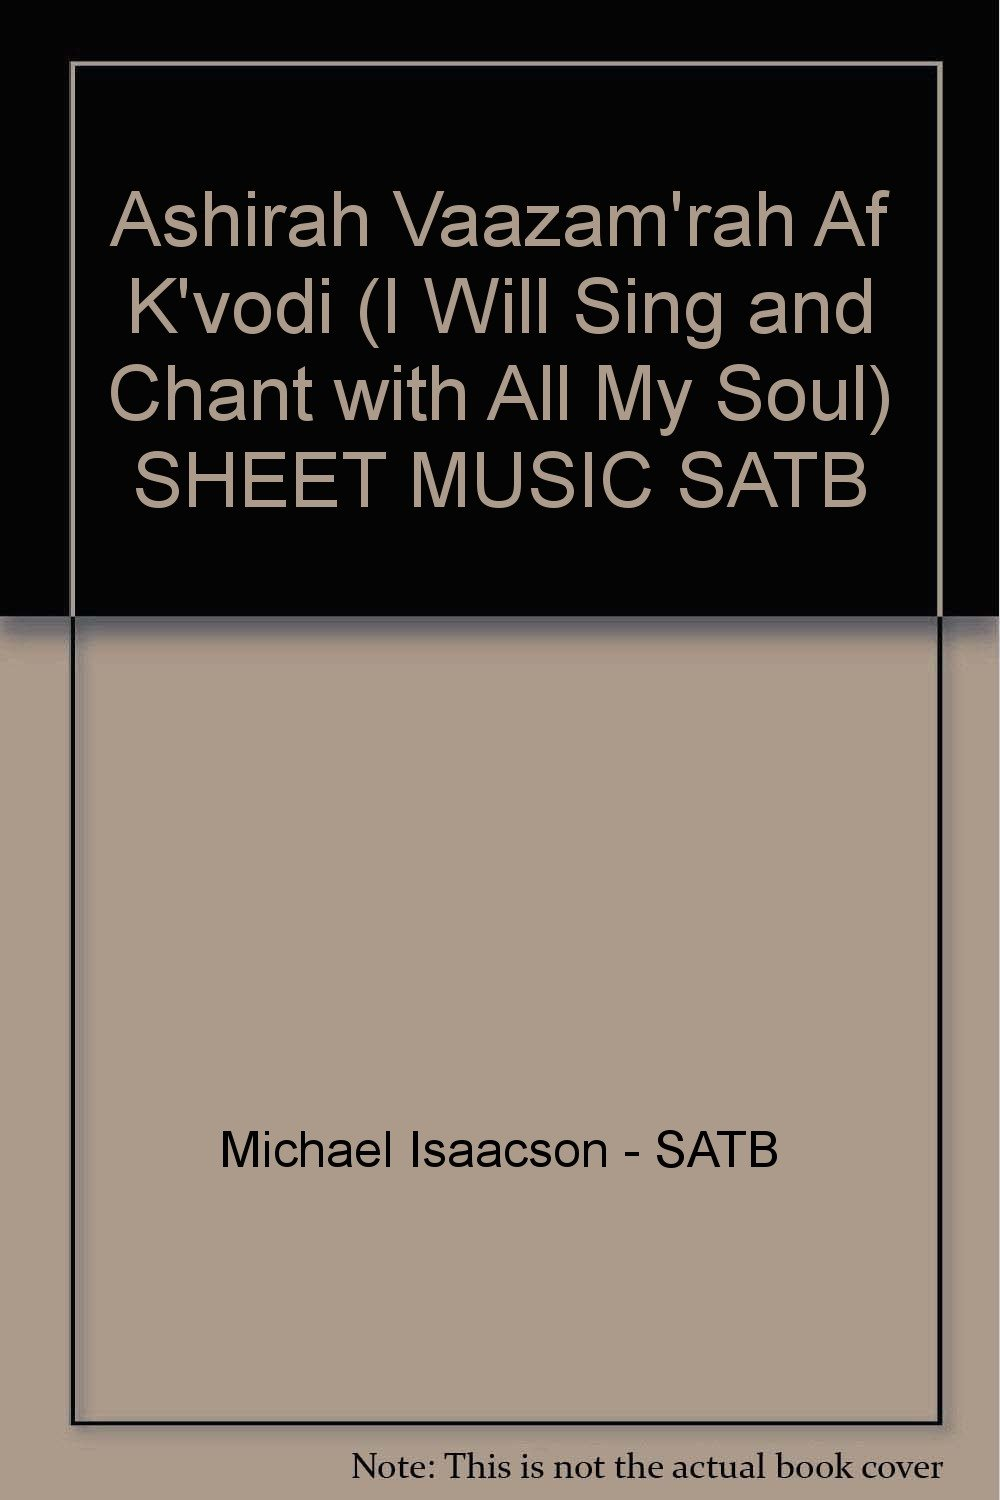 Ashirah Vaazam'rah Af K'vodi (I Will Sing and Chant with All My Soul) SHEET MUSIC SATB